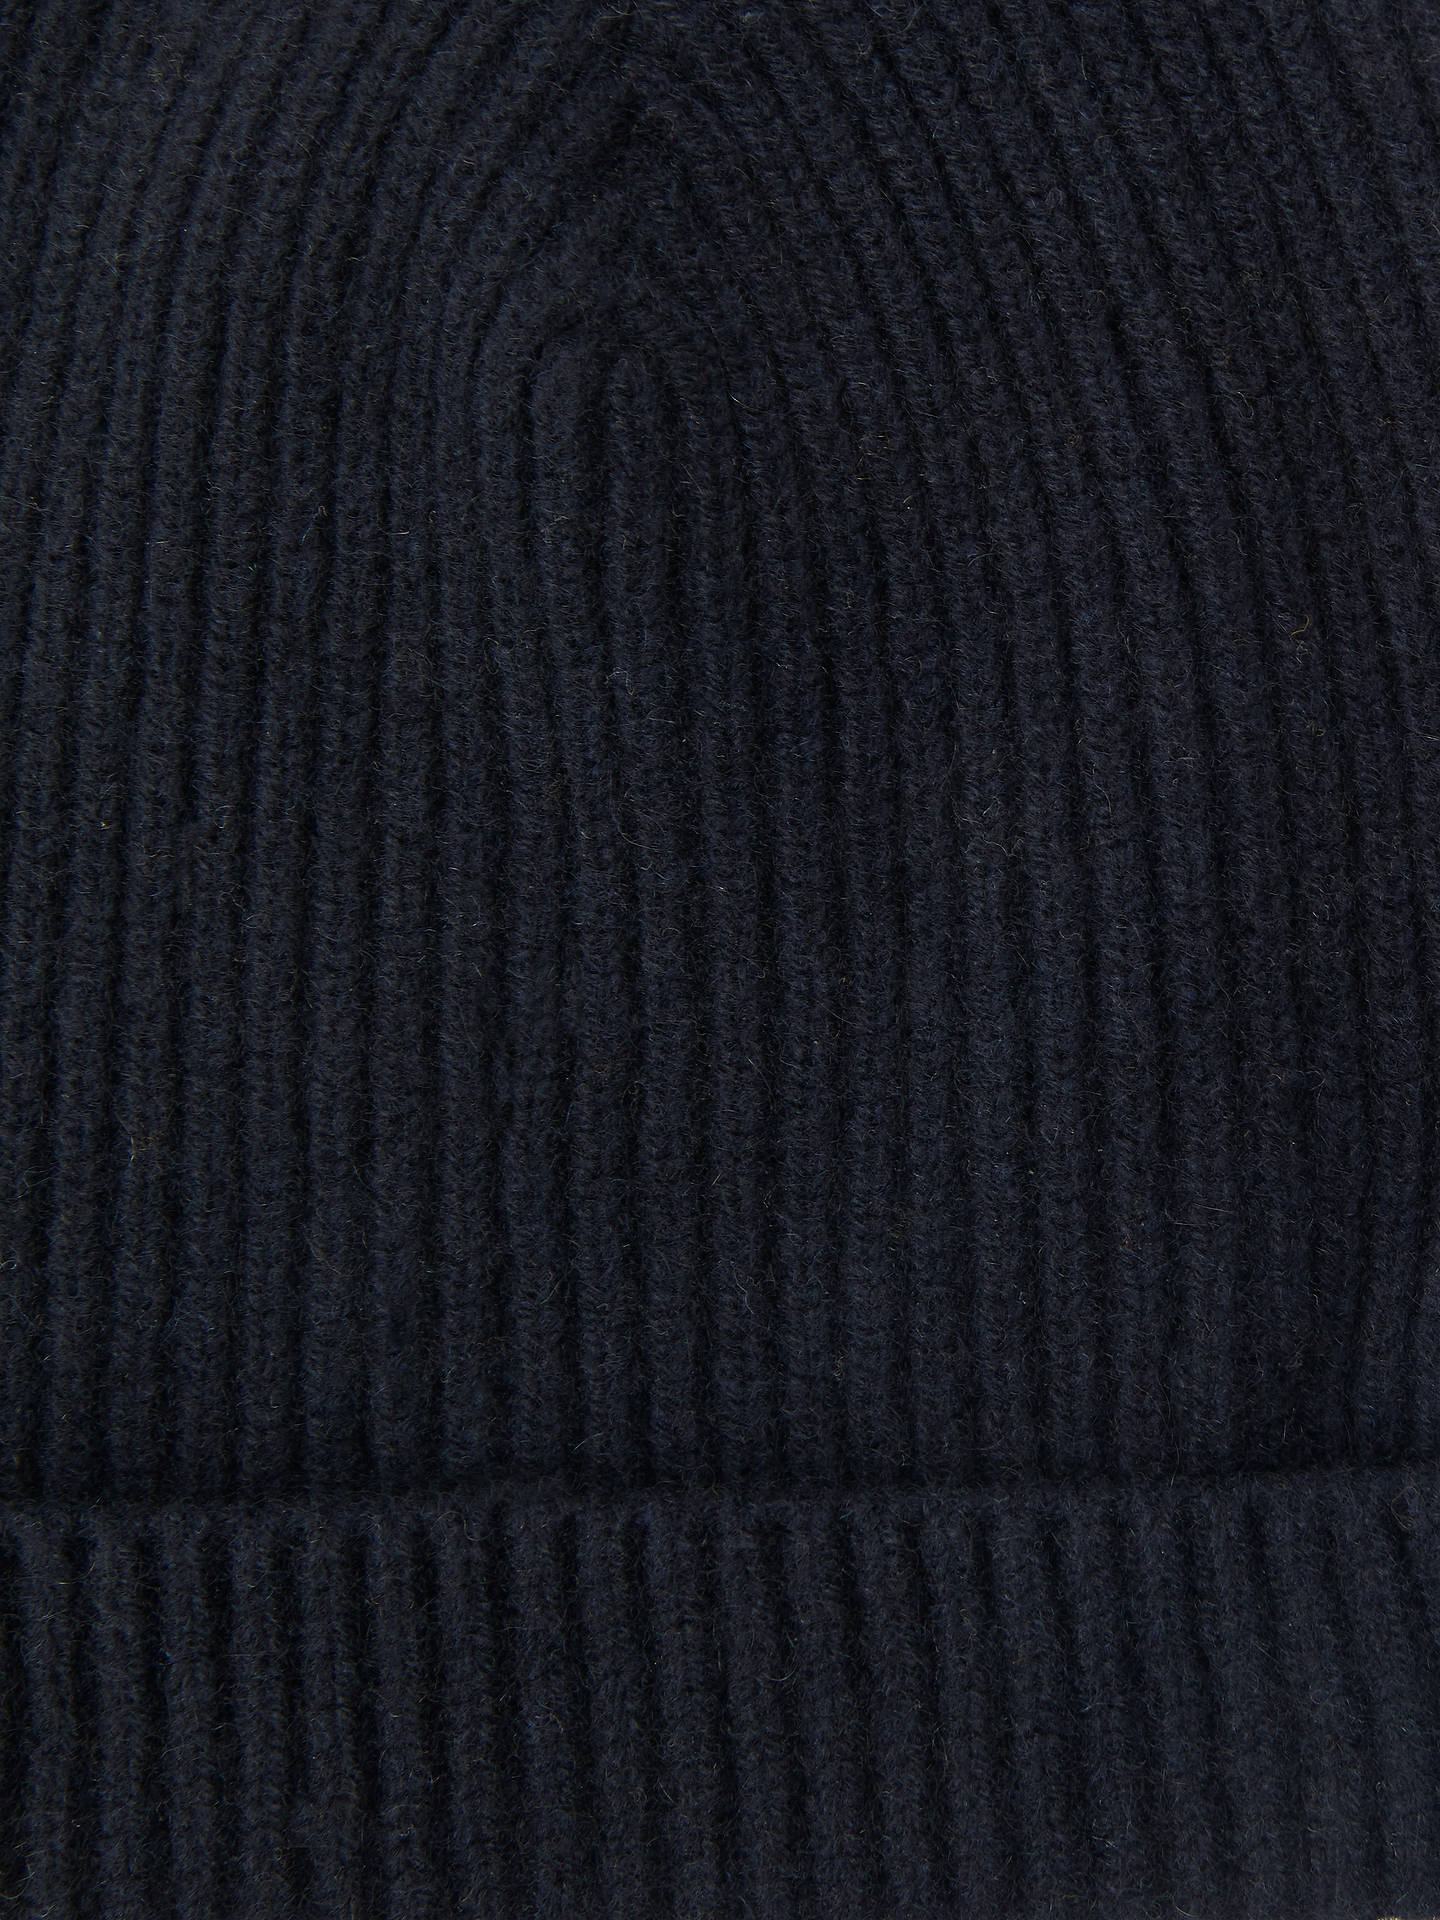 Buy John Lewis & Partners Italian Cashmere Ribbed Beanie Hat, One Size, Navy Online at johnlewis.com